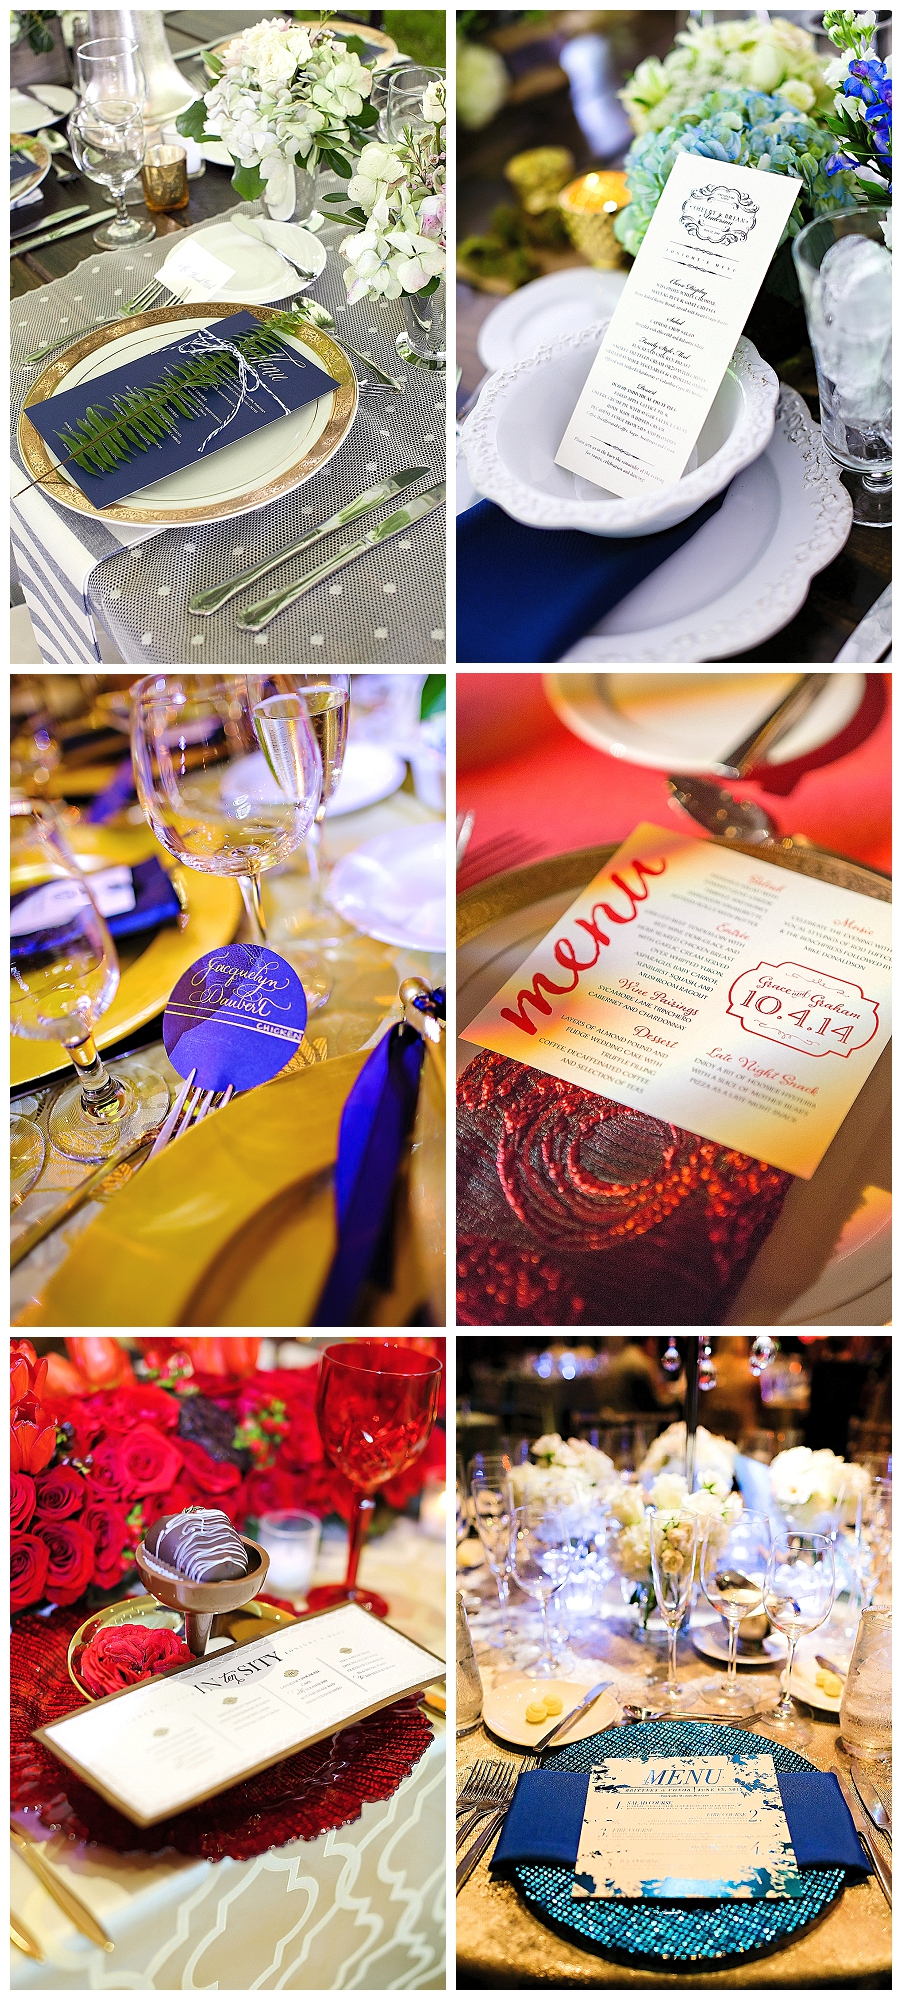 Blog | Mon Amie Events Inc. | Indianapolis Weddings & Events Planner ...